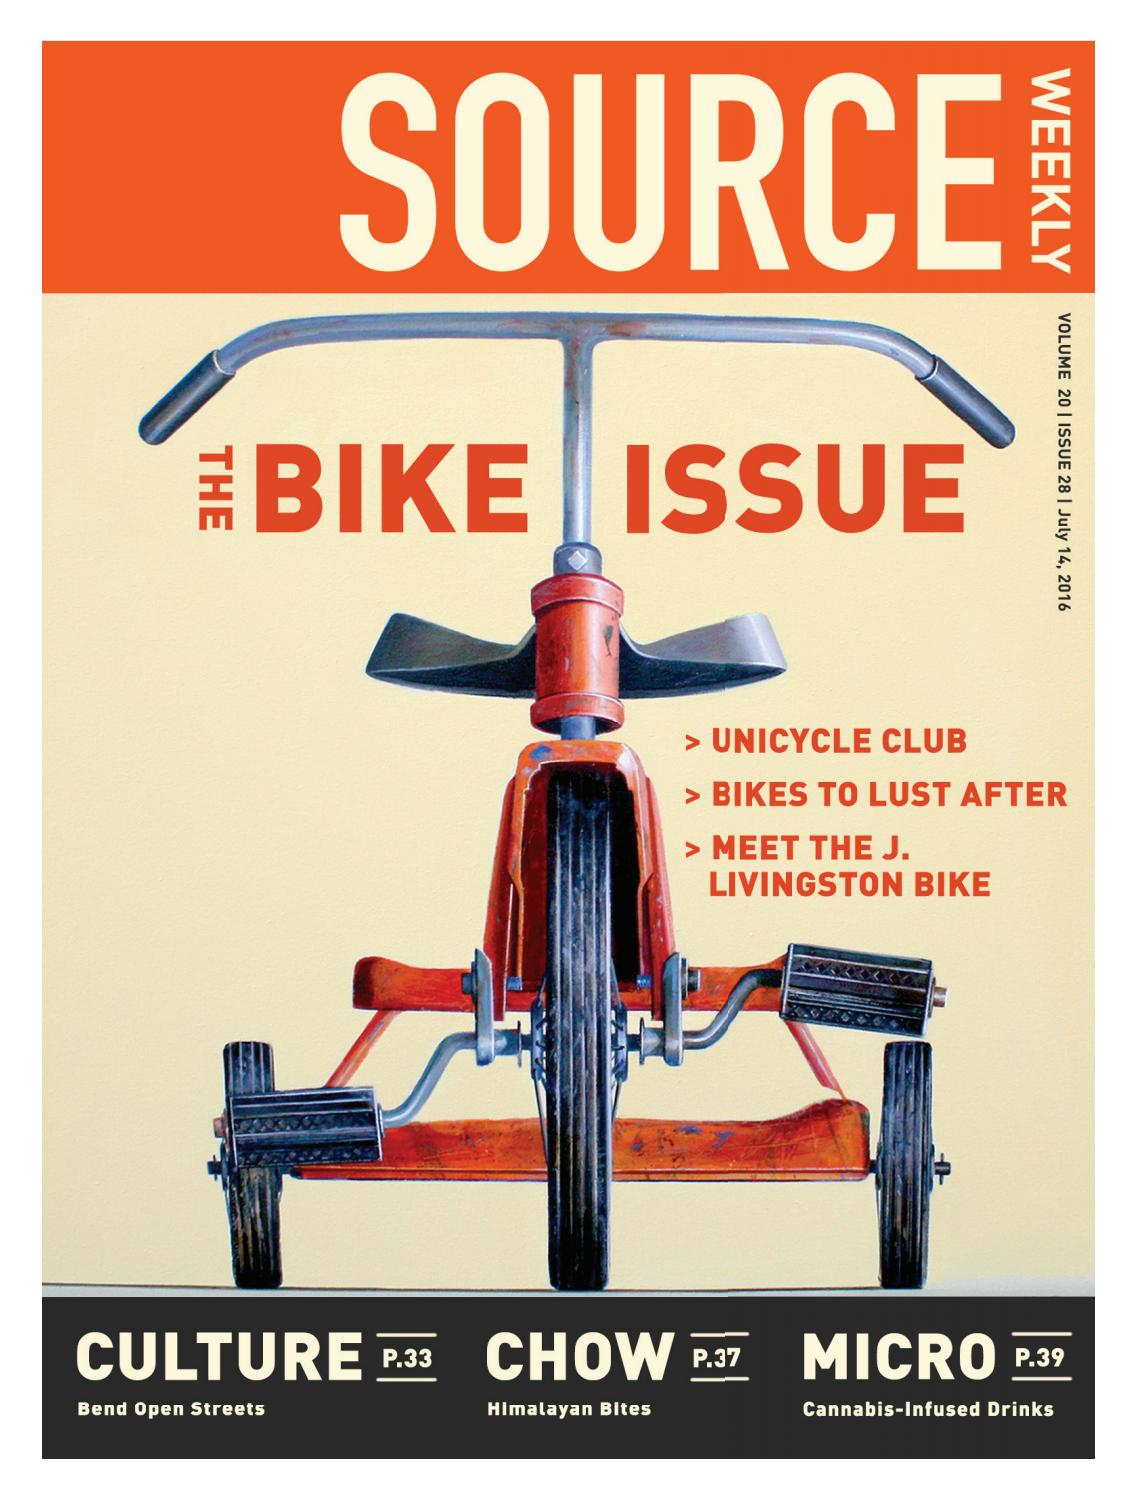 4211c2c04c3 Source Weekly - July 14, 2016 by The Source Weekly - issuu